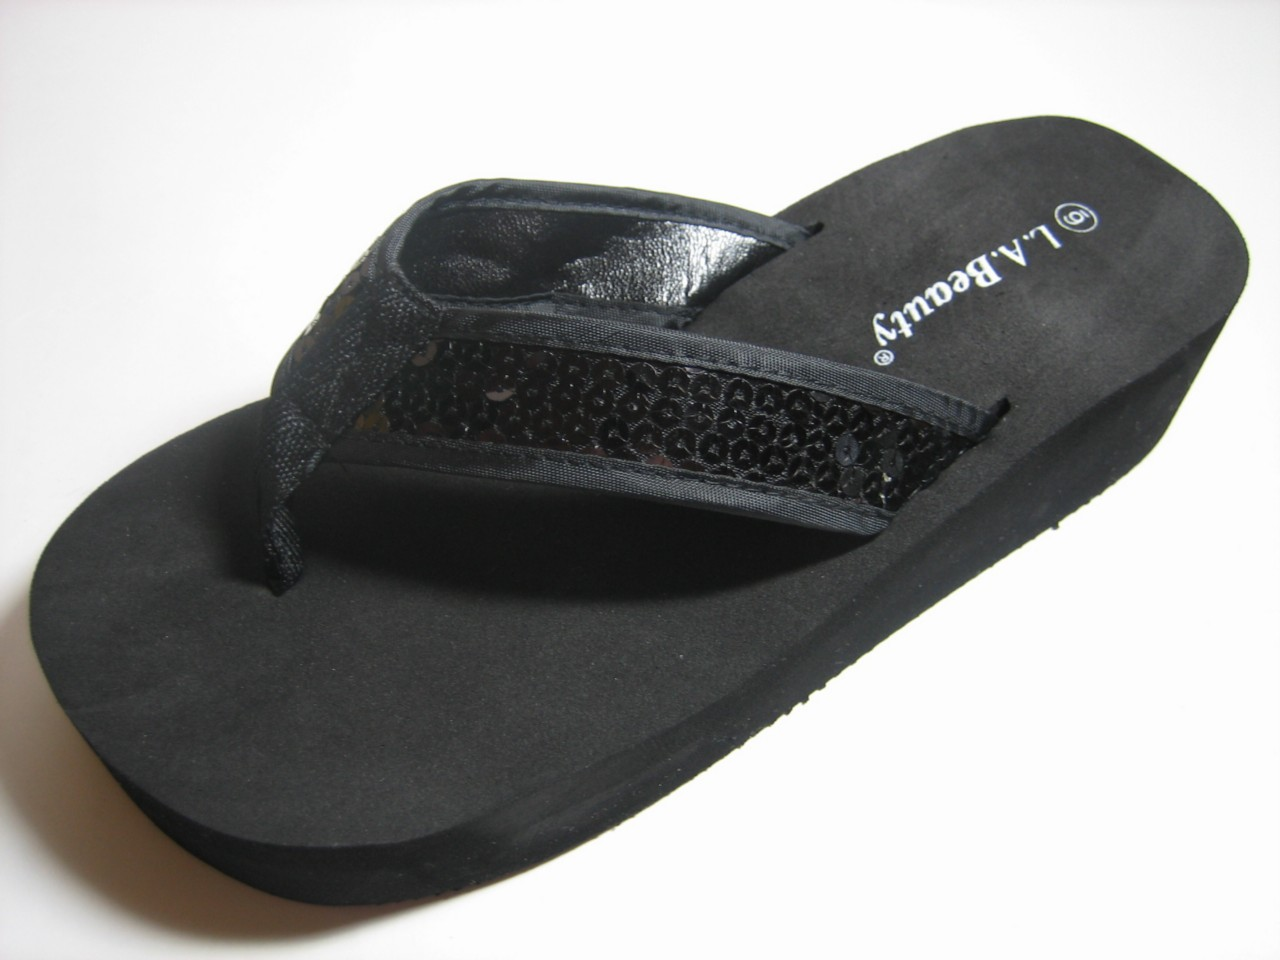 Shop our collection of women's sandals online at Macy's. Browse the latest trends and view our great selection of flip flops, slip-ons, and more.